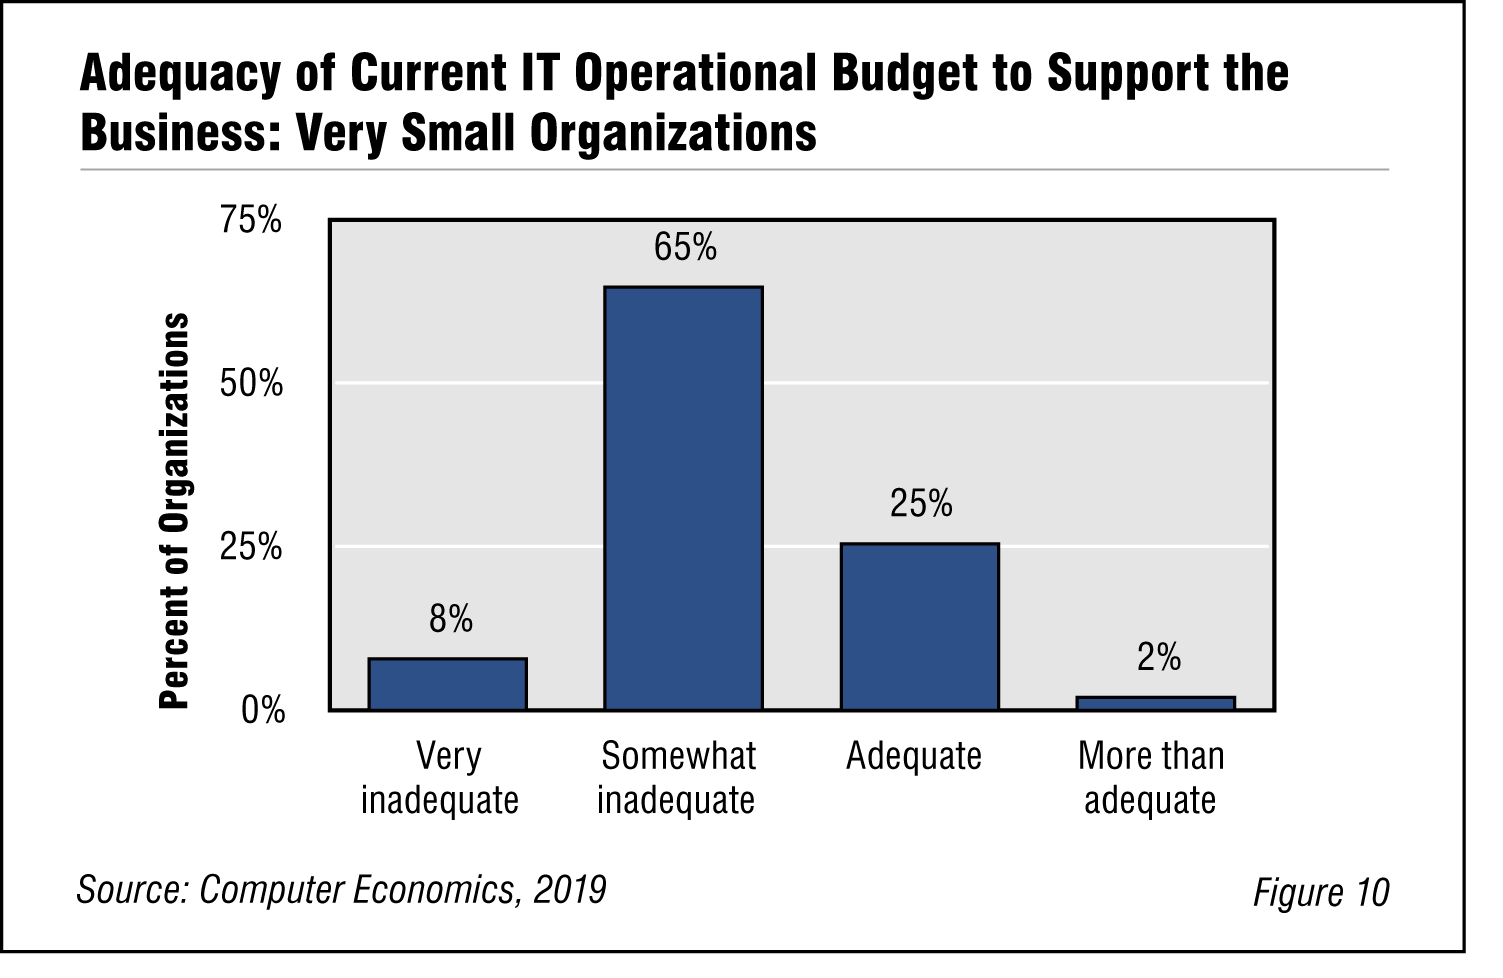 Fig. 10: Adequacy of Current IT Operational Budget to Support the Business: Very Small Organizations